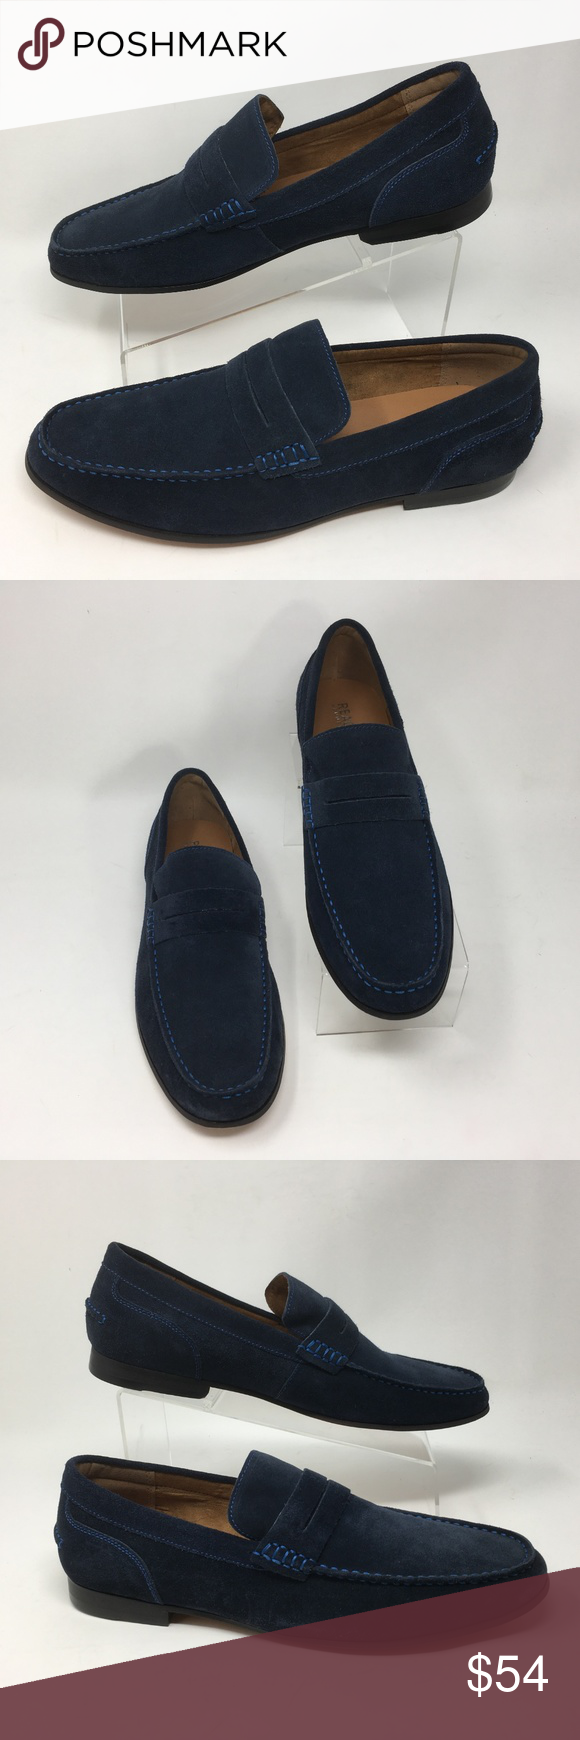 e5e87b302b8 Kenneth Cole Reaction Men s Crespo Suede Navy New with box Casual suede  leather loafer Framed in